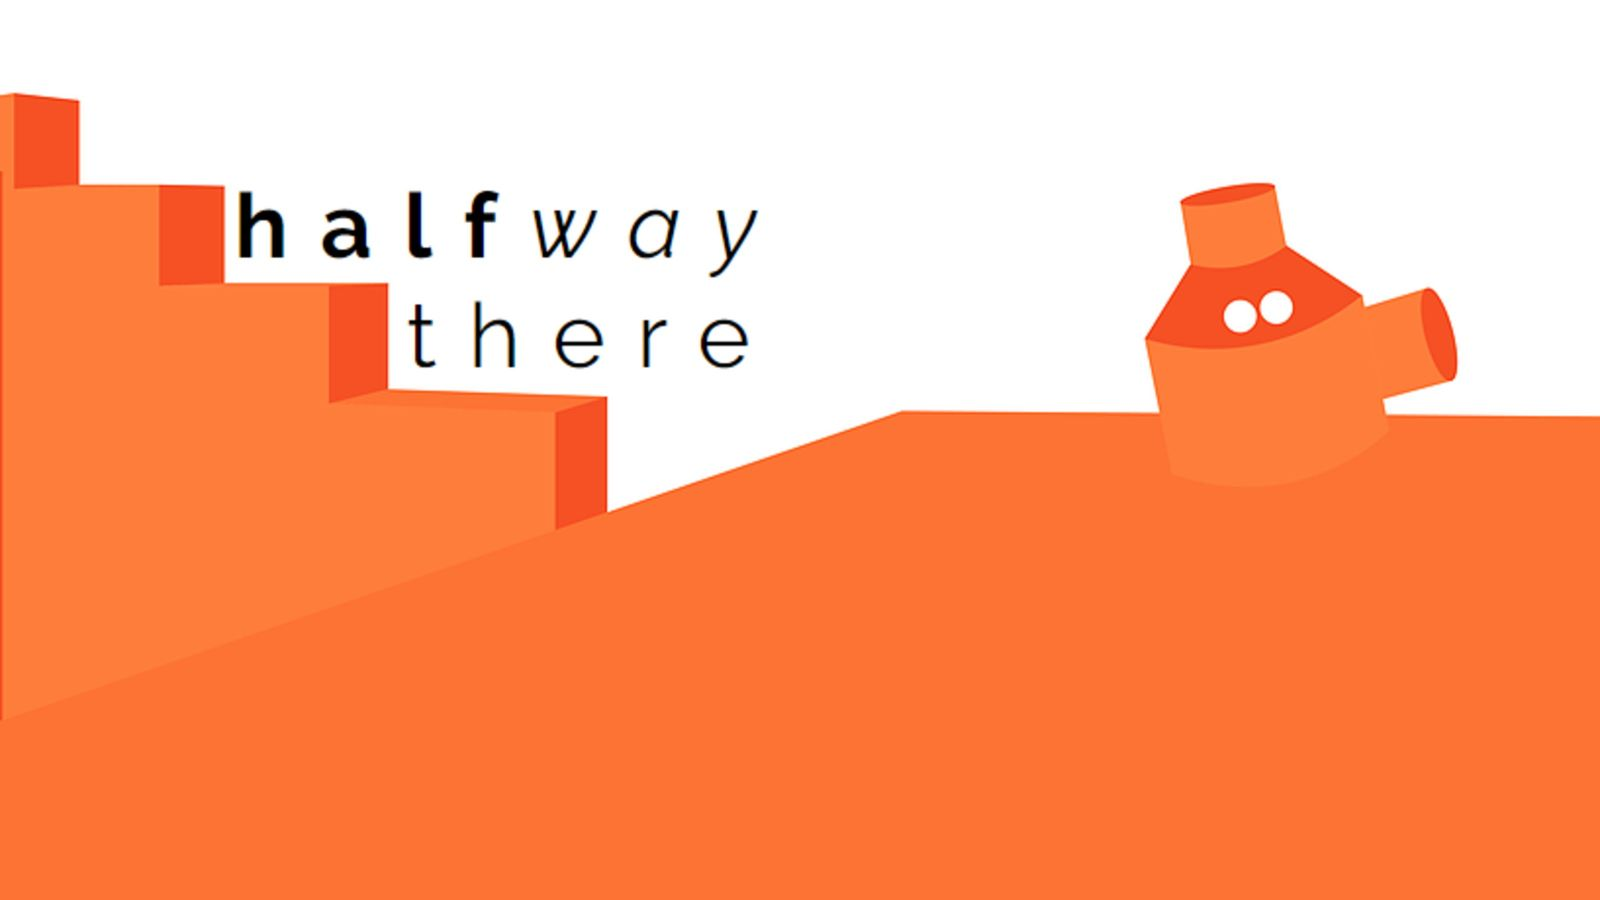 Halfway there exhibition poster